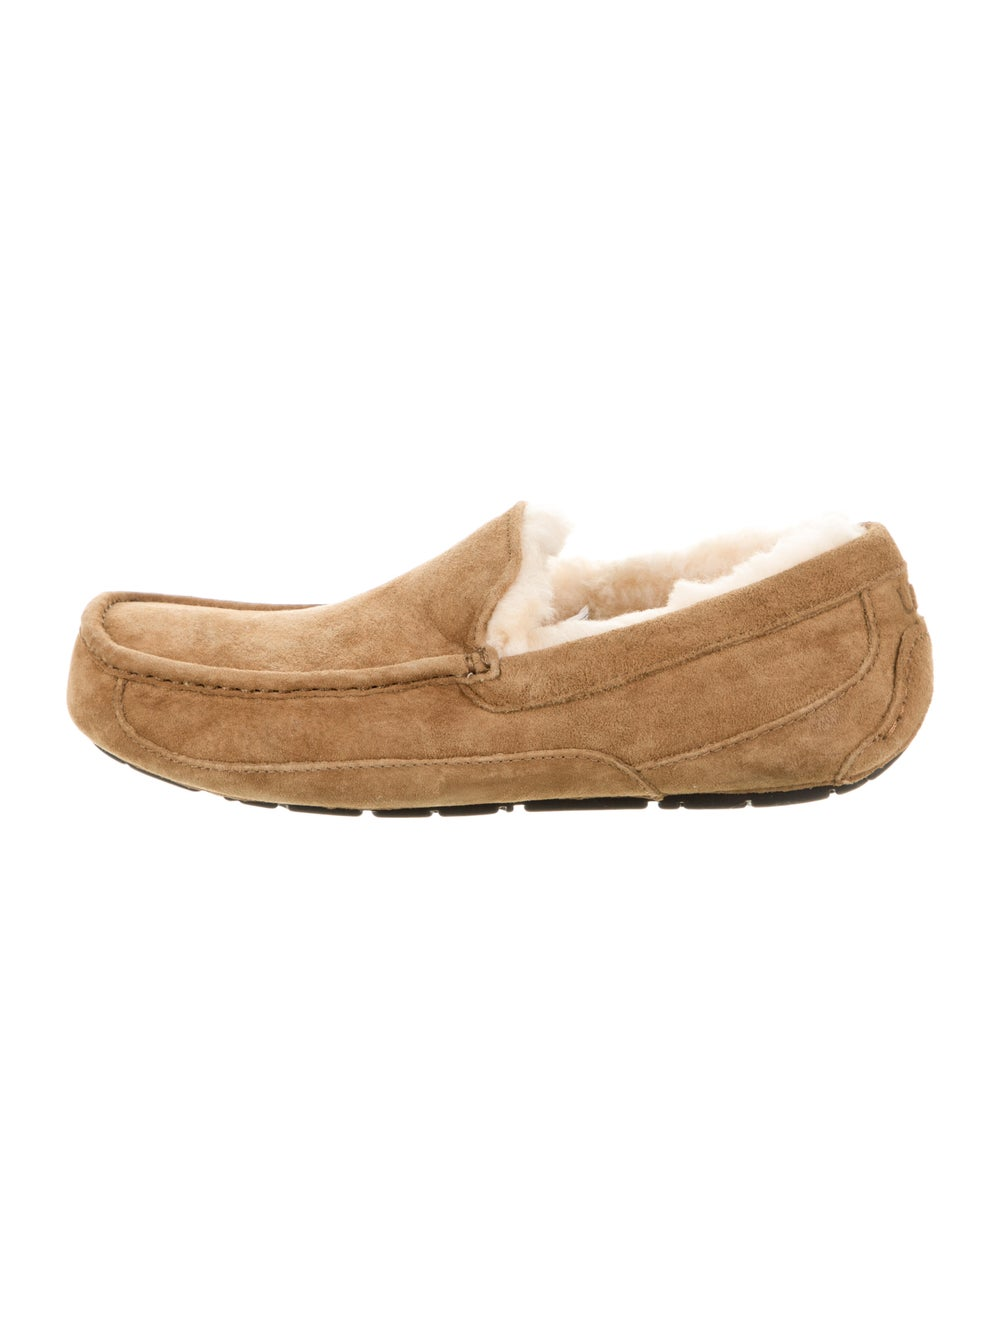 UGG Suede Slippers - image 1